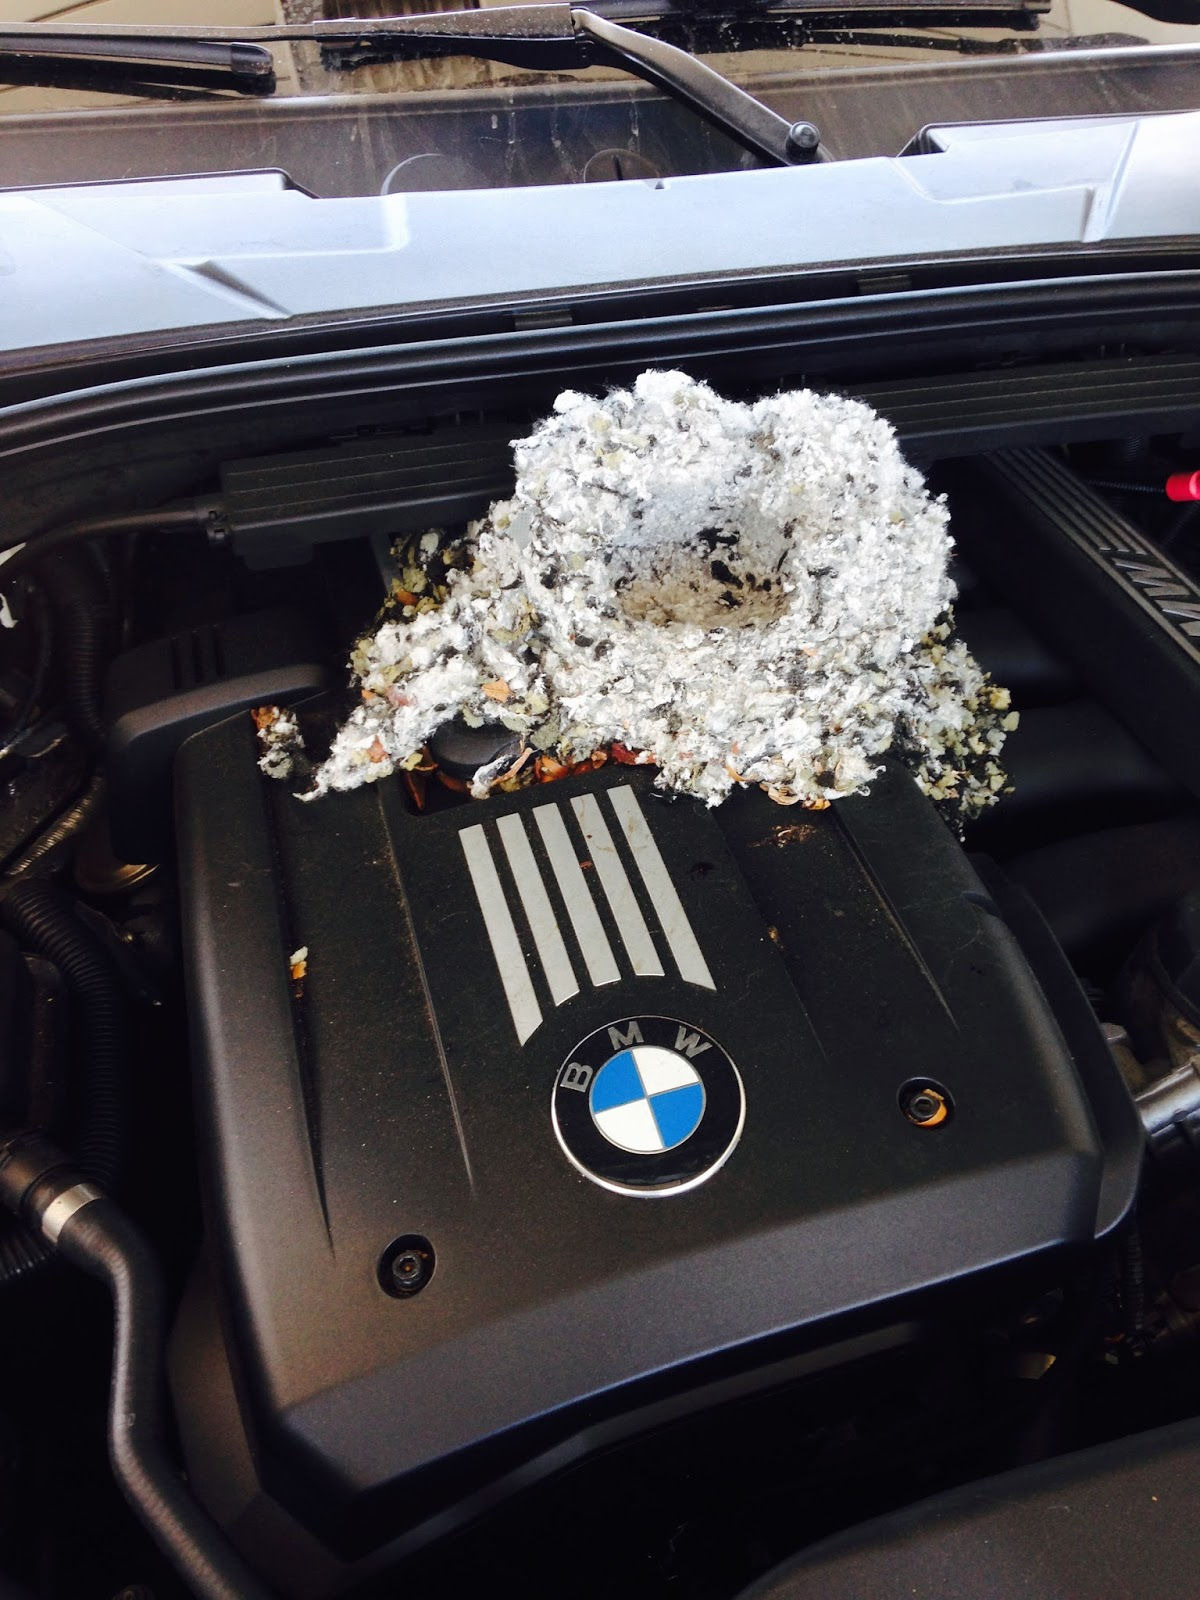 hight resolution of beware of soy wiring in your car the rats ruined my bmw engine again